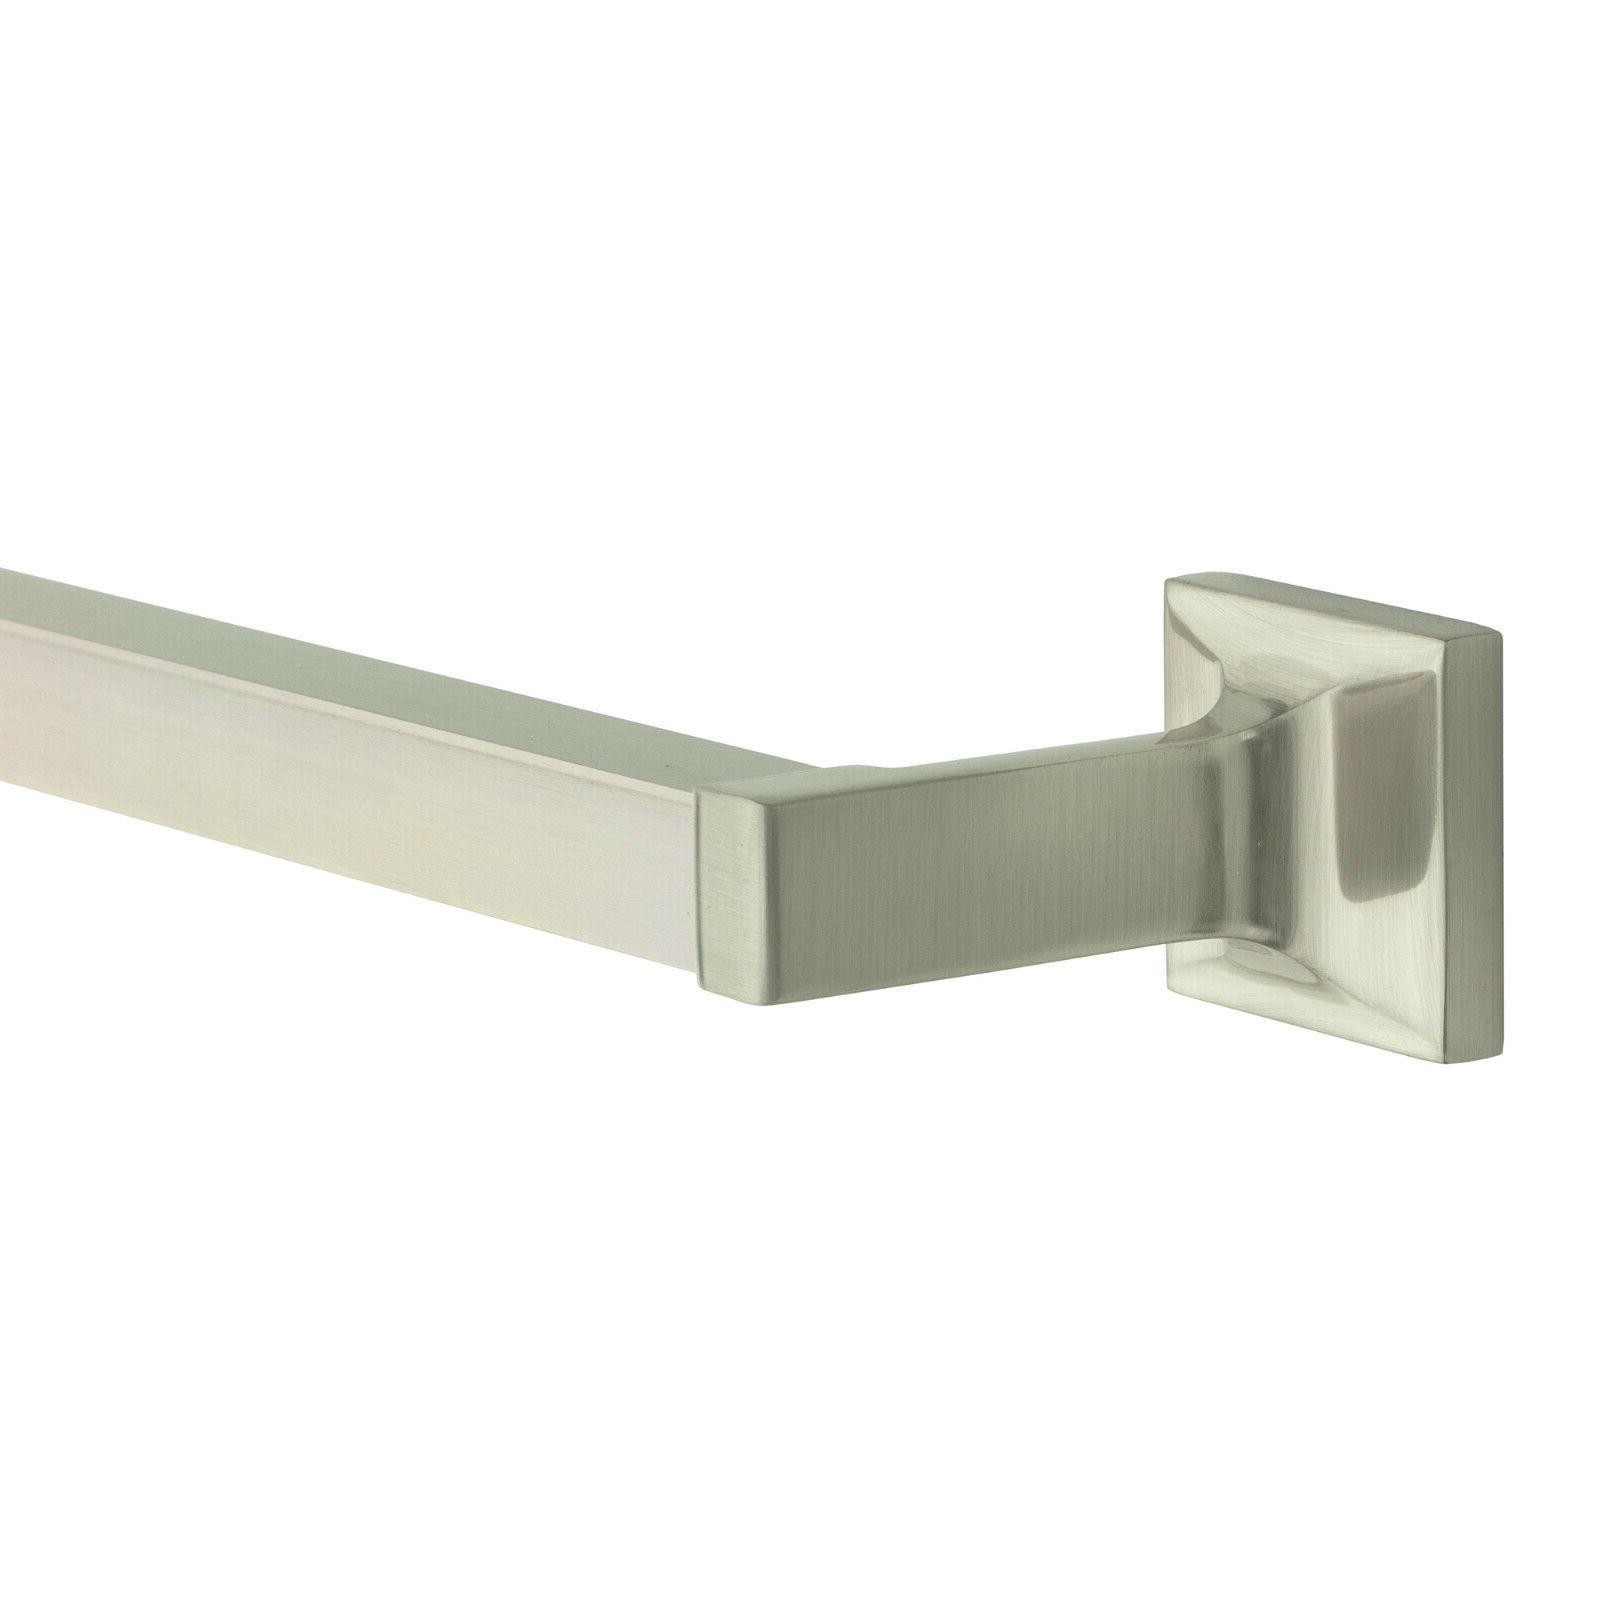 Redwood Bar Bath Bathroom Accessory, Brushed Nickel